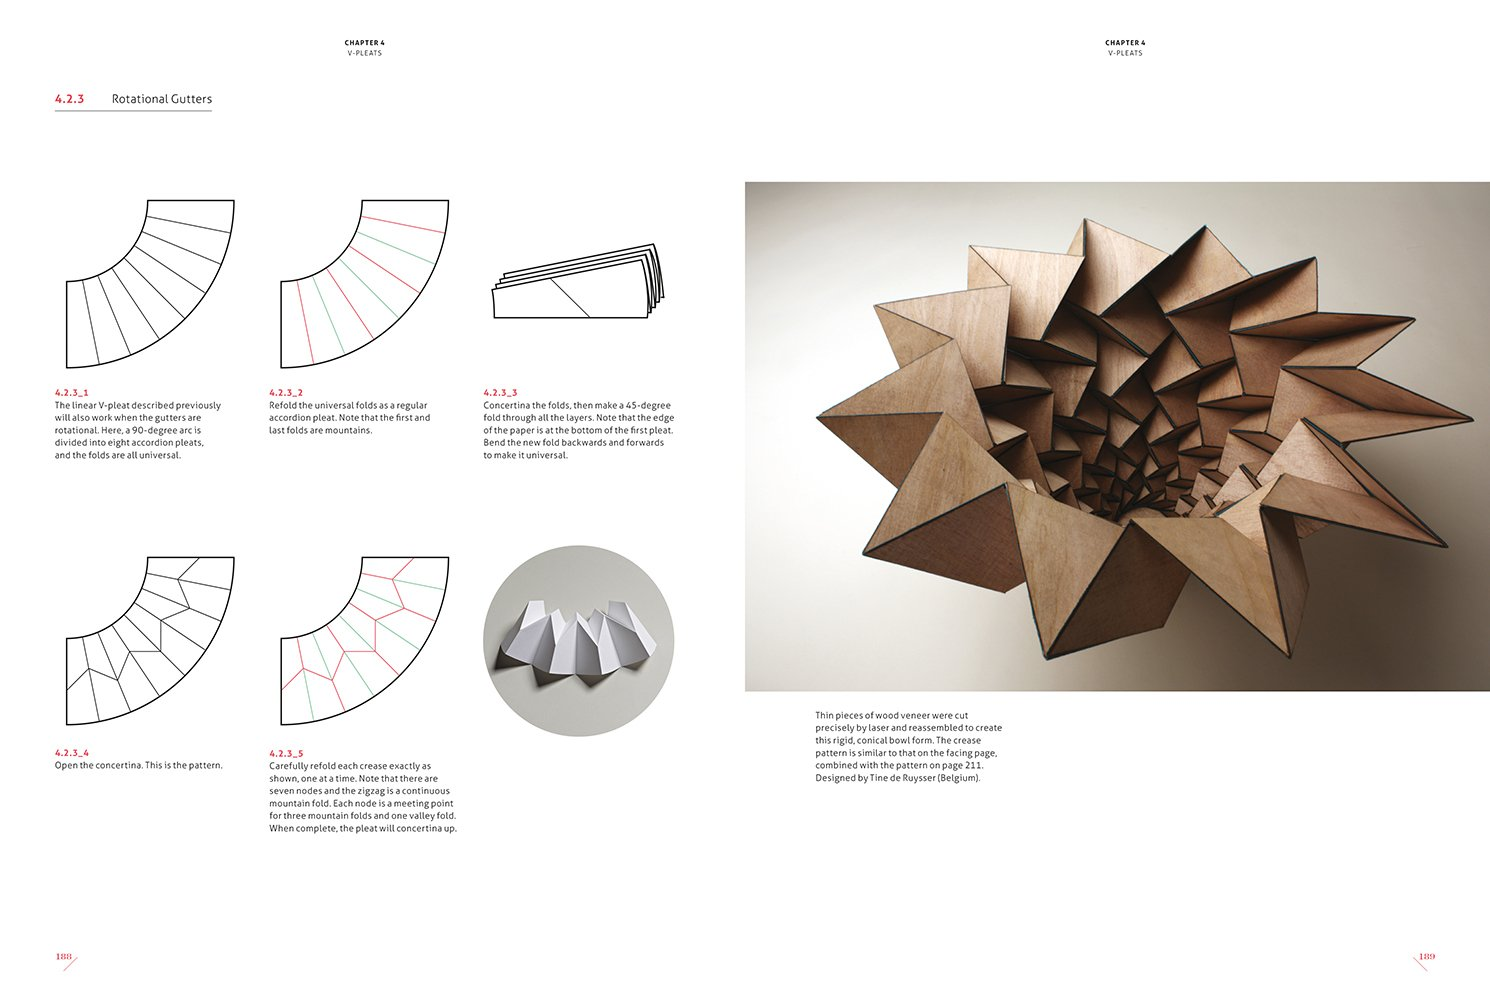 Complete pleats pleating techniques for fashion architecture and complete pleats pleating techniques for fashion architecture and design paul jackson 9781780676012 amazon books jeuxipadfo Image collections